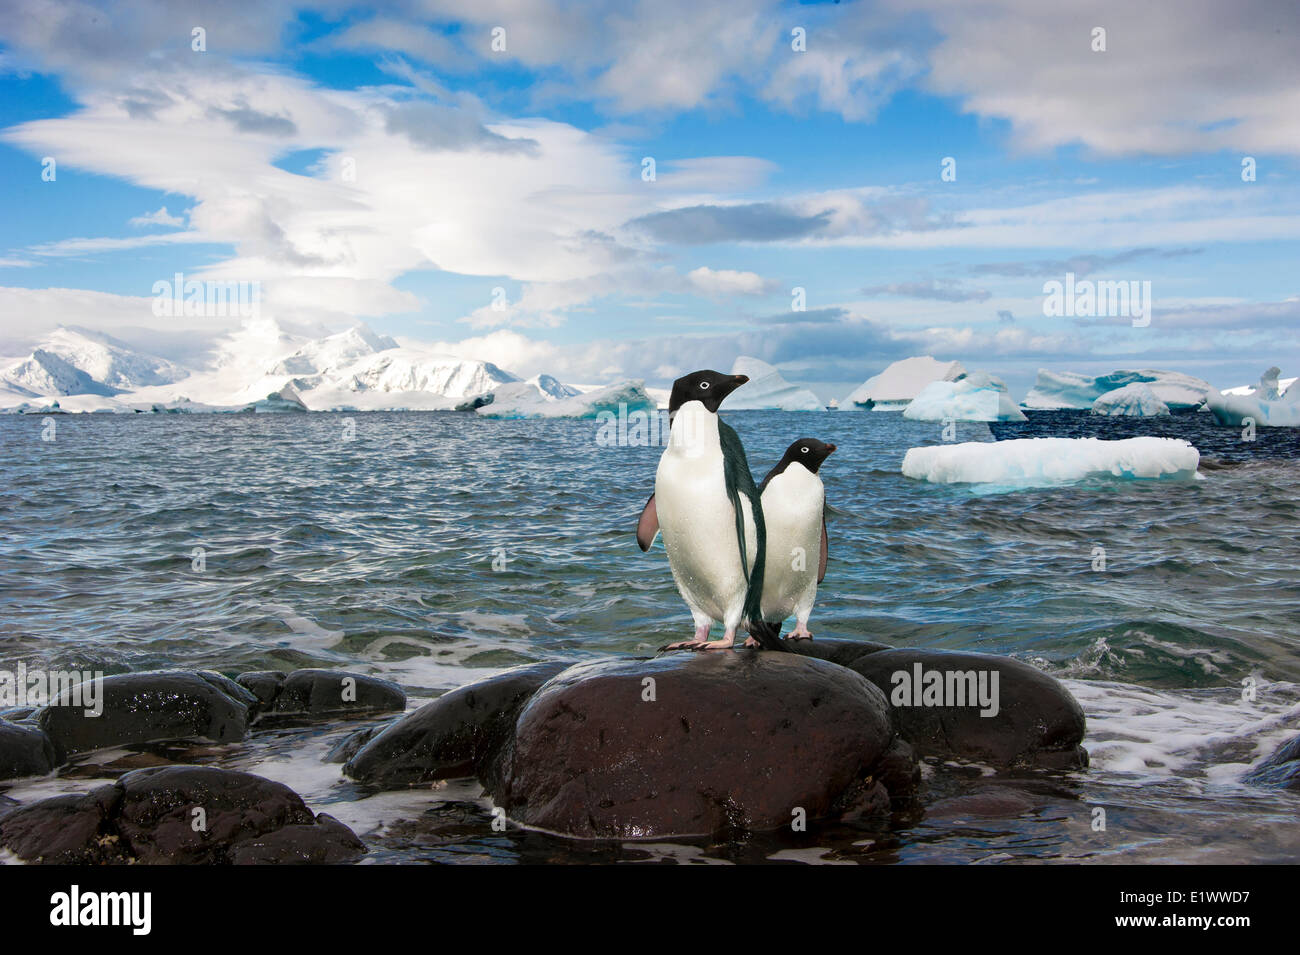 Adelie penguin(s) (Pygoscelis adeliae), Orne Islands, Antarctic Peninsula - Stock Image